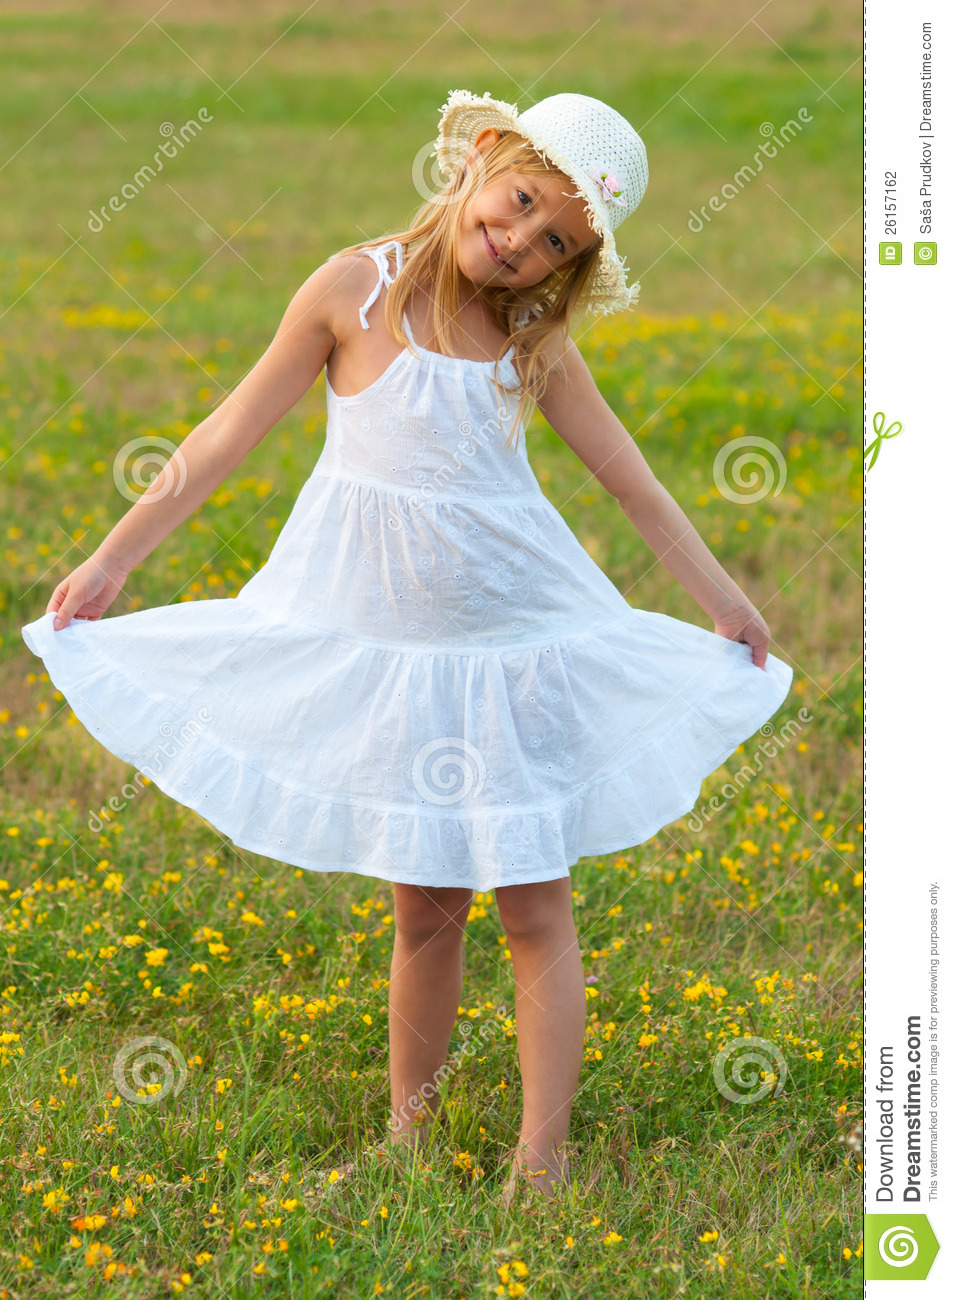 e0c4f2788 Cute Little Girl In White Dress And Hat Walking Stock Photo - Image ...